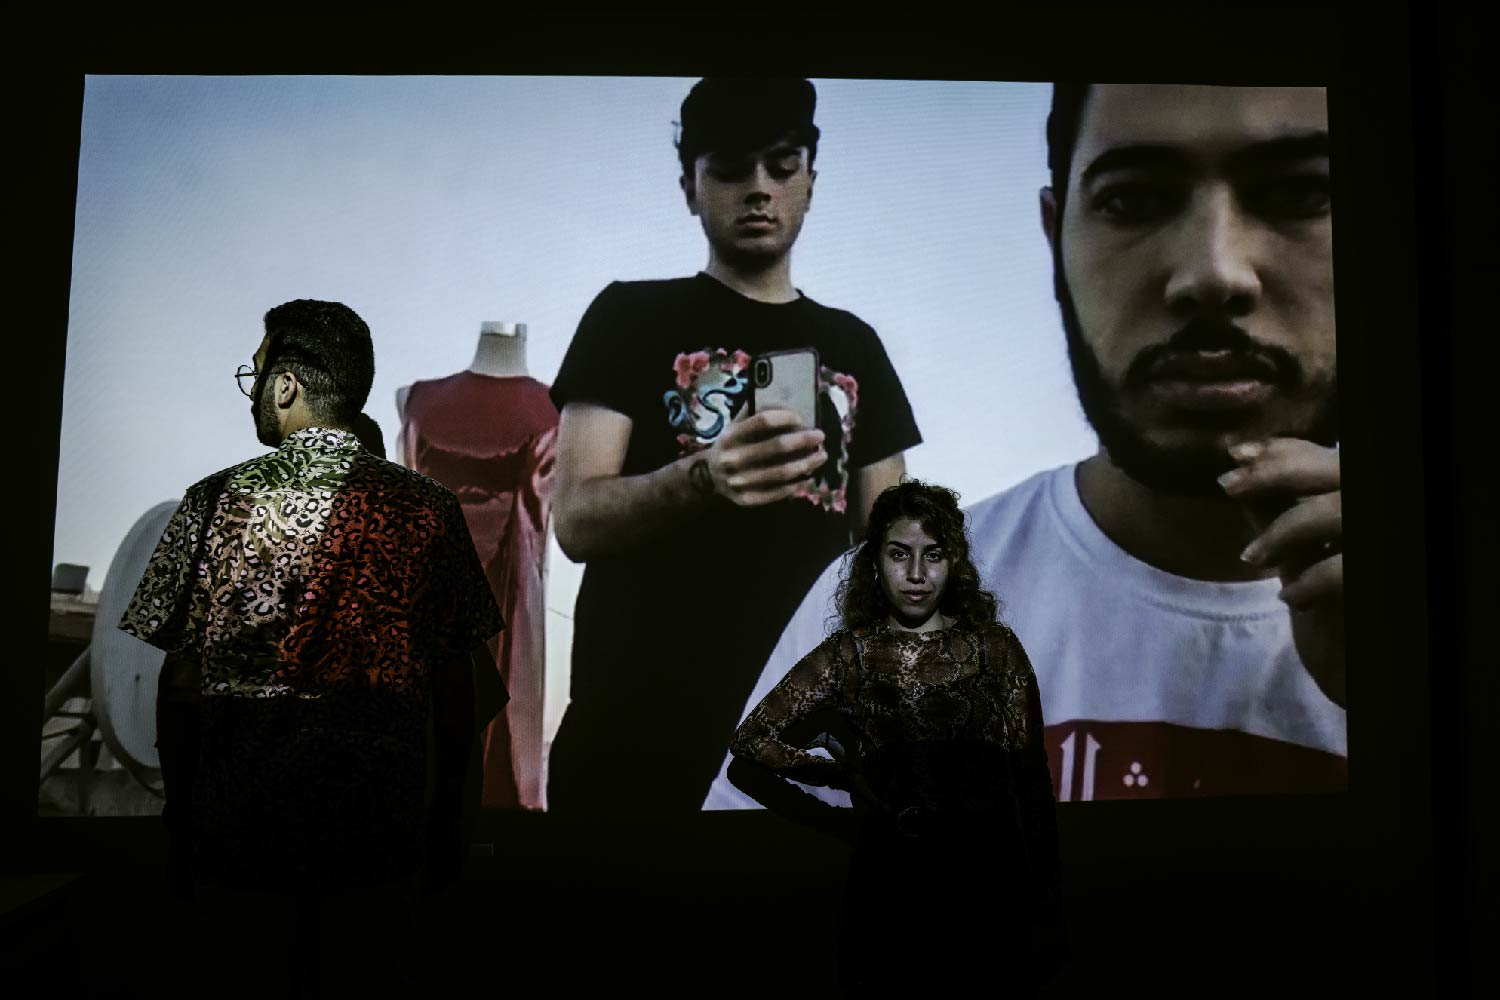 Members of tRASHY in Amman, Shukri Lawrence and Omar Braika, pose for a picture while being projected onto co-designers Reem Kawasmi and Luai Al-Shuaibi, in the city of Bethlehem on August 21, 2020. (Samar Hazboun)